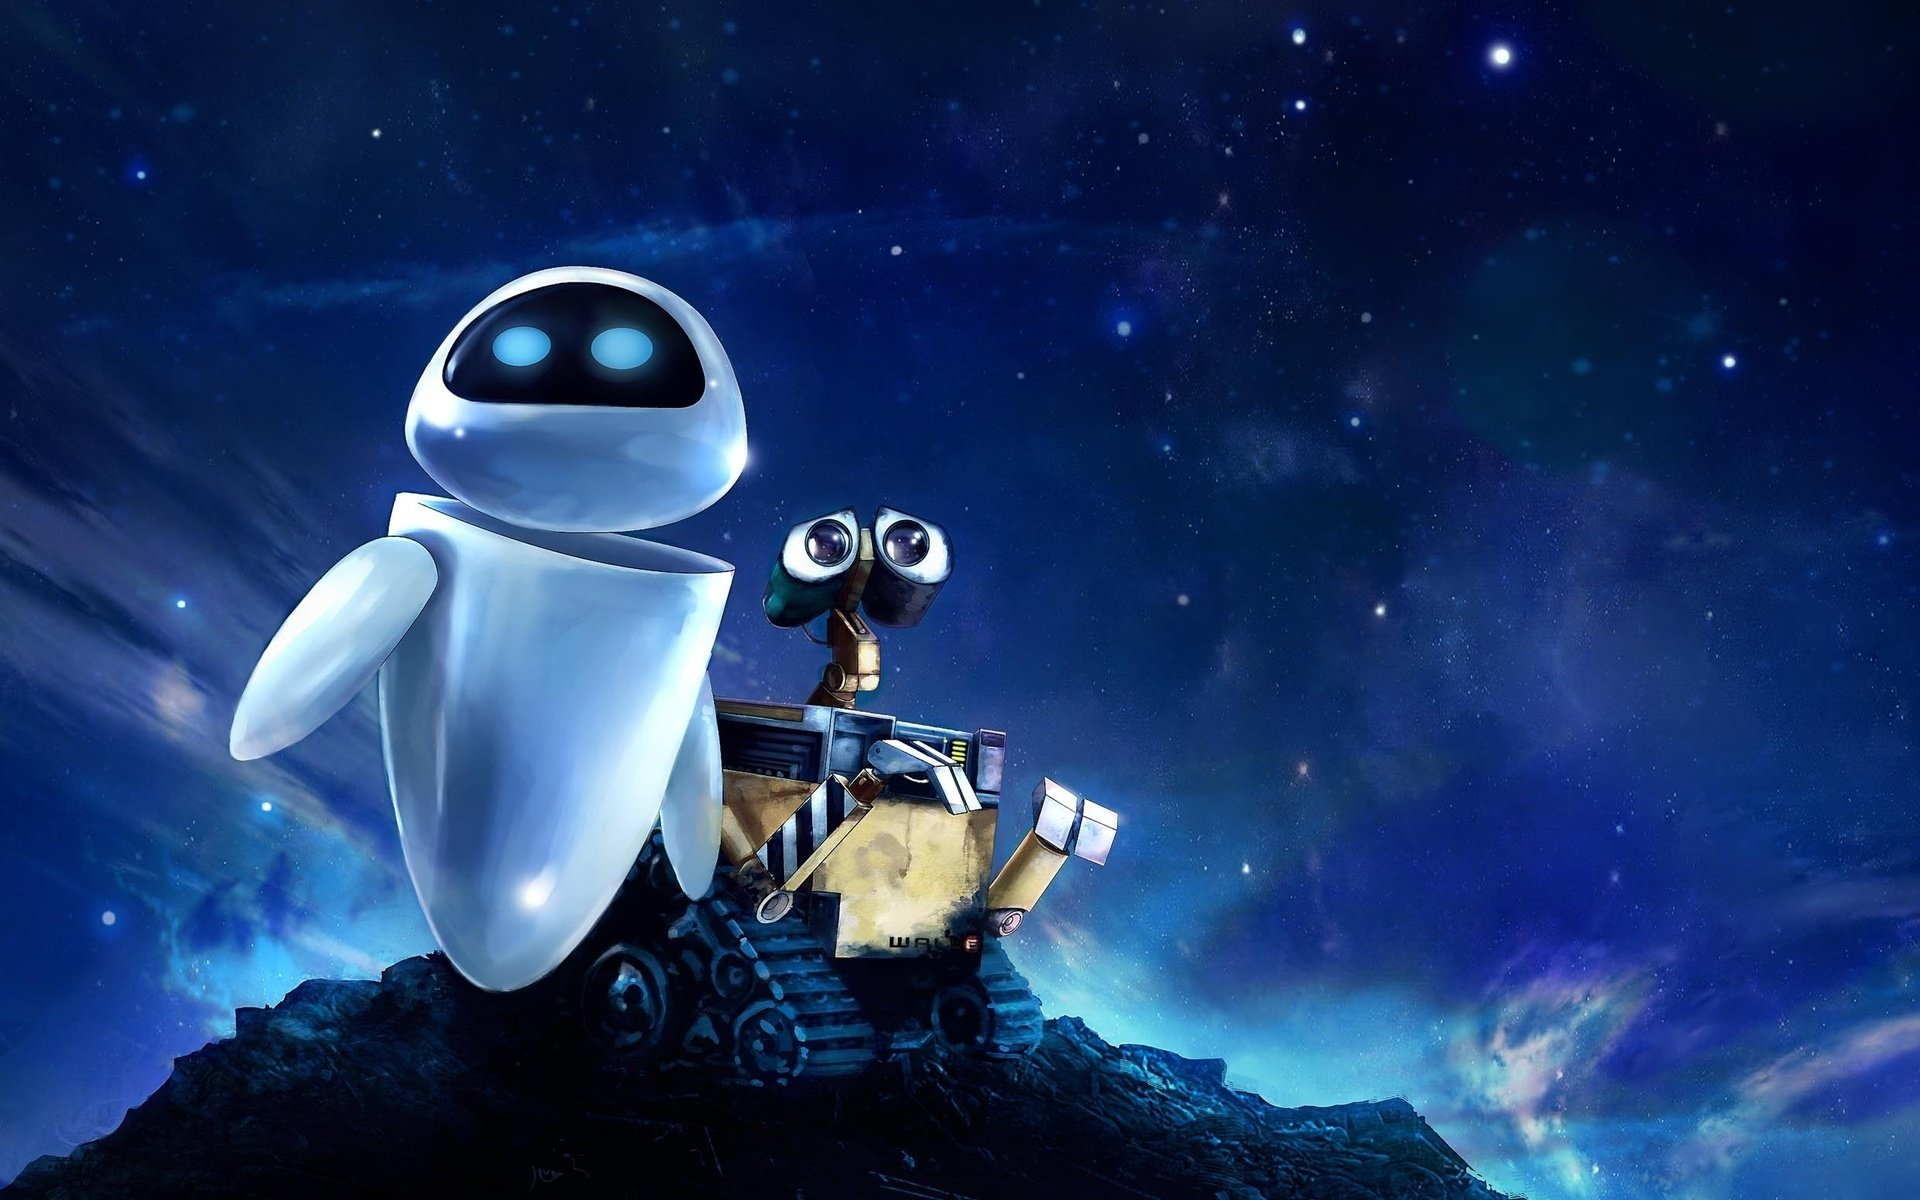 72 wall·e hd wallpapers | background images - wallpaper abyss